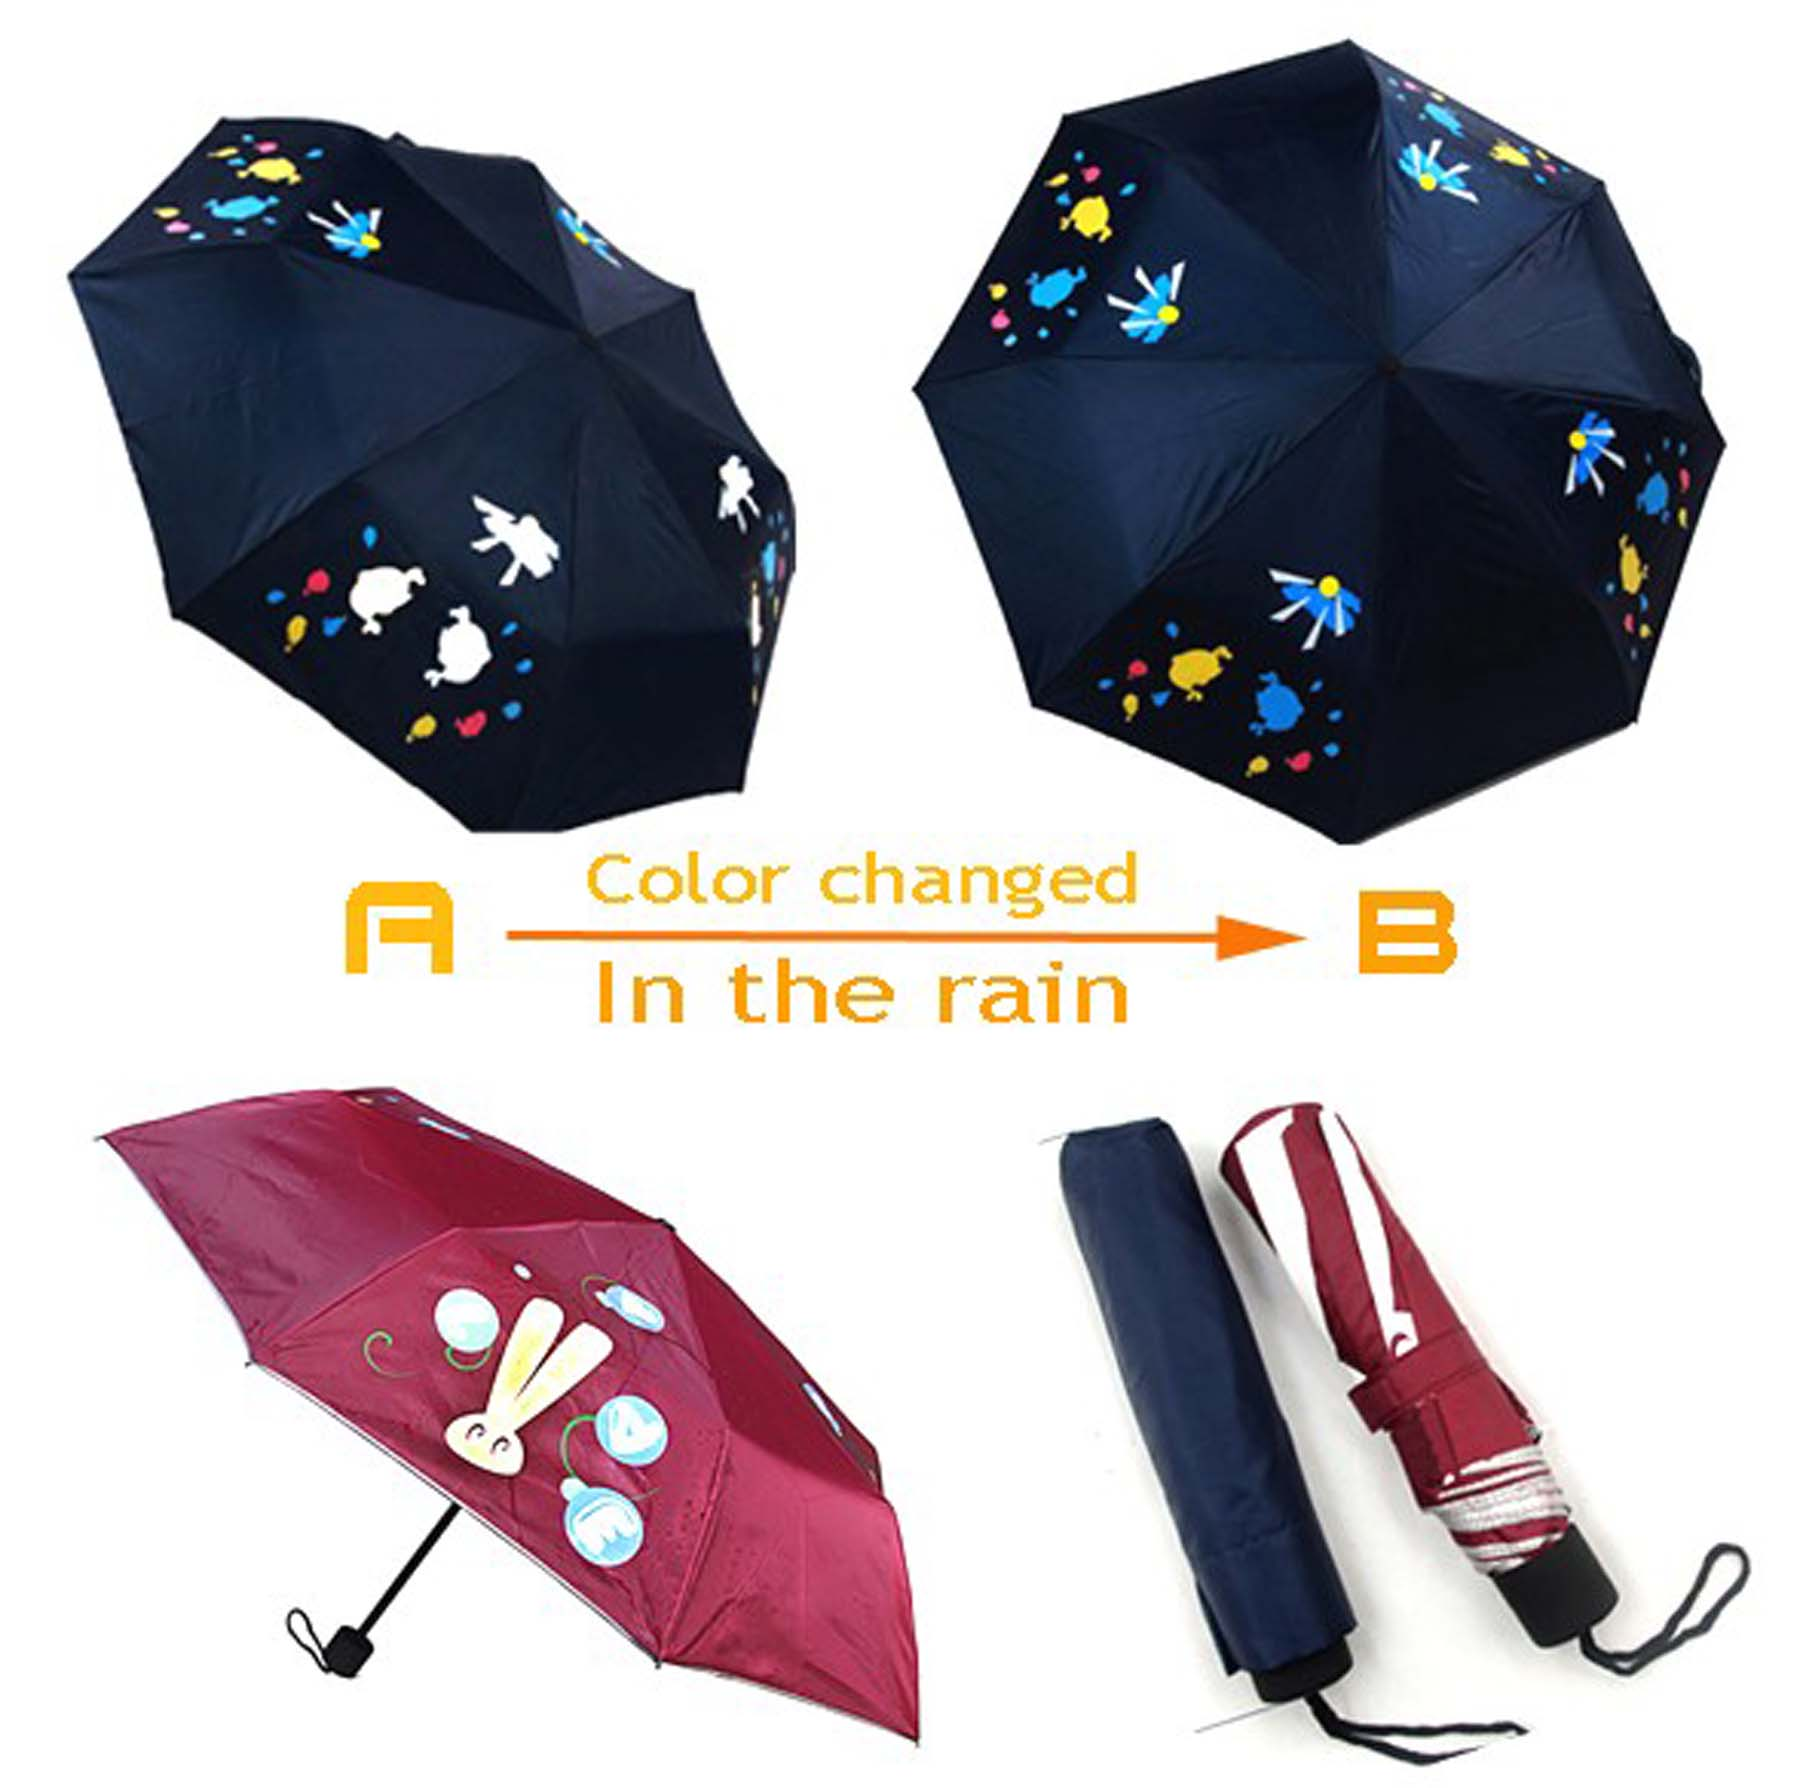 Color changed in the rain folding umbrella